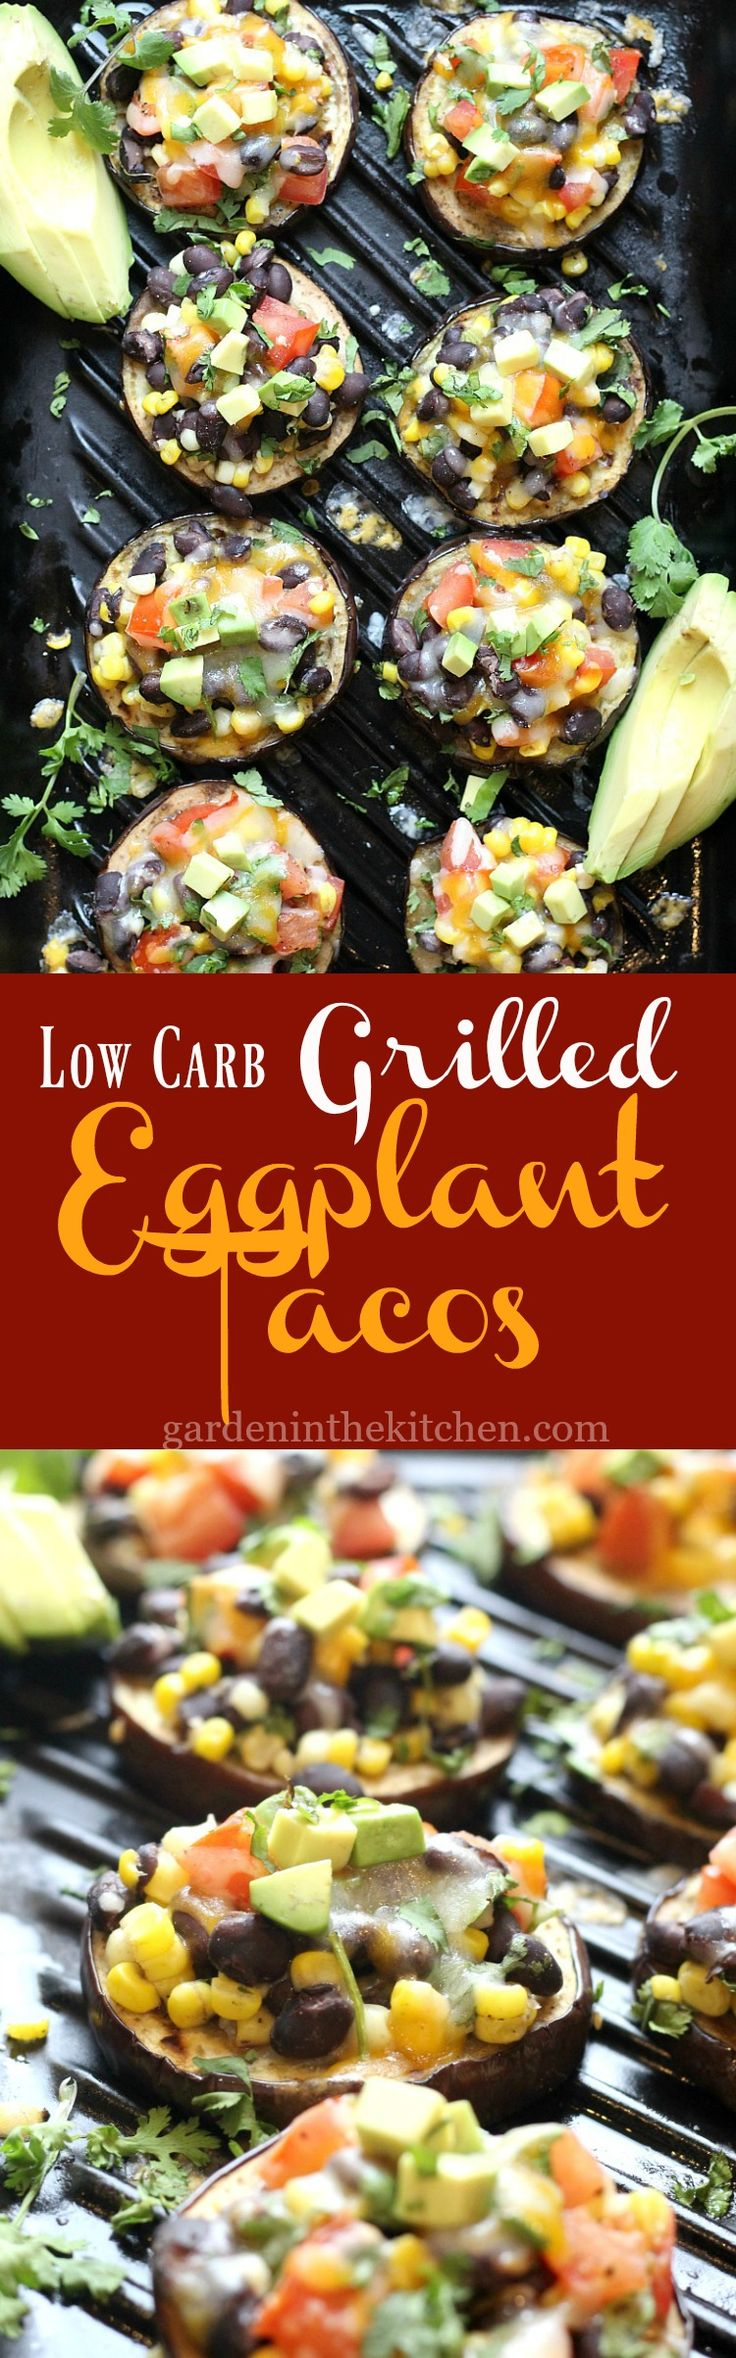 Low-Carb Grilled Eggplant Tacos